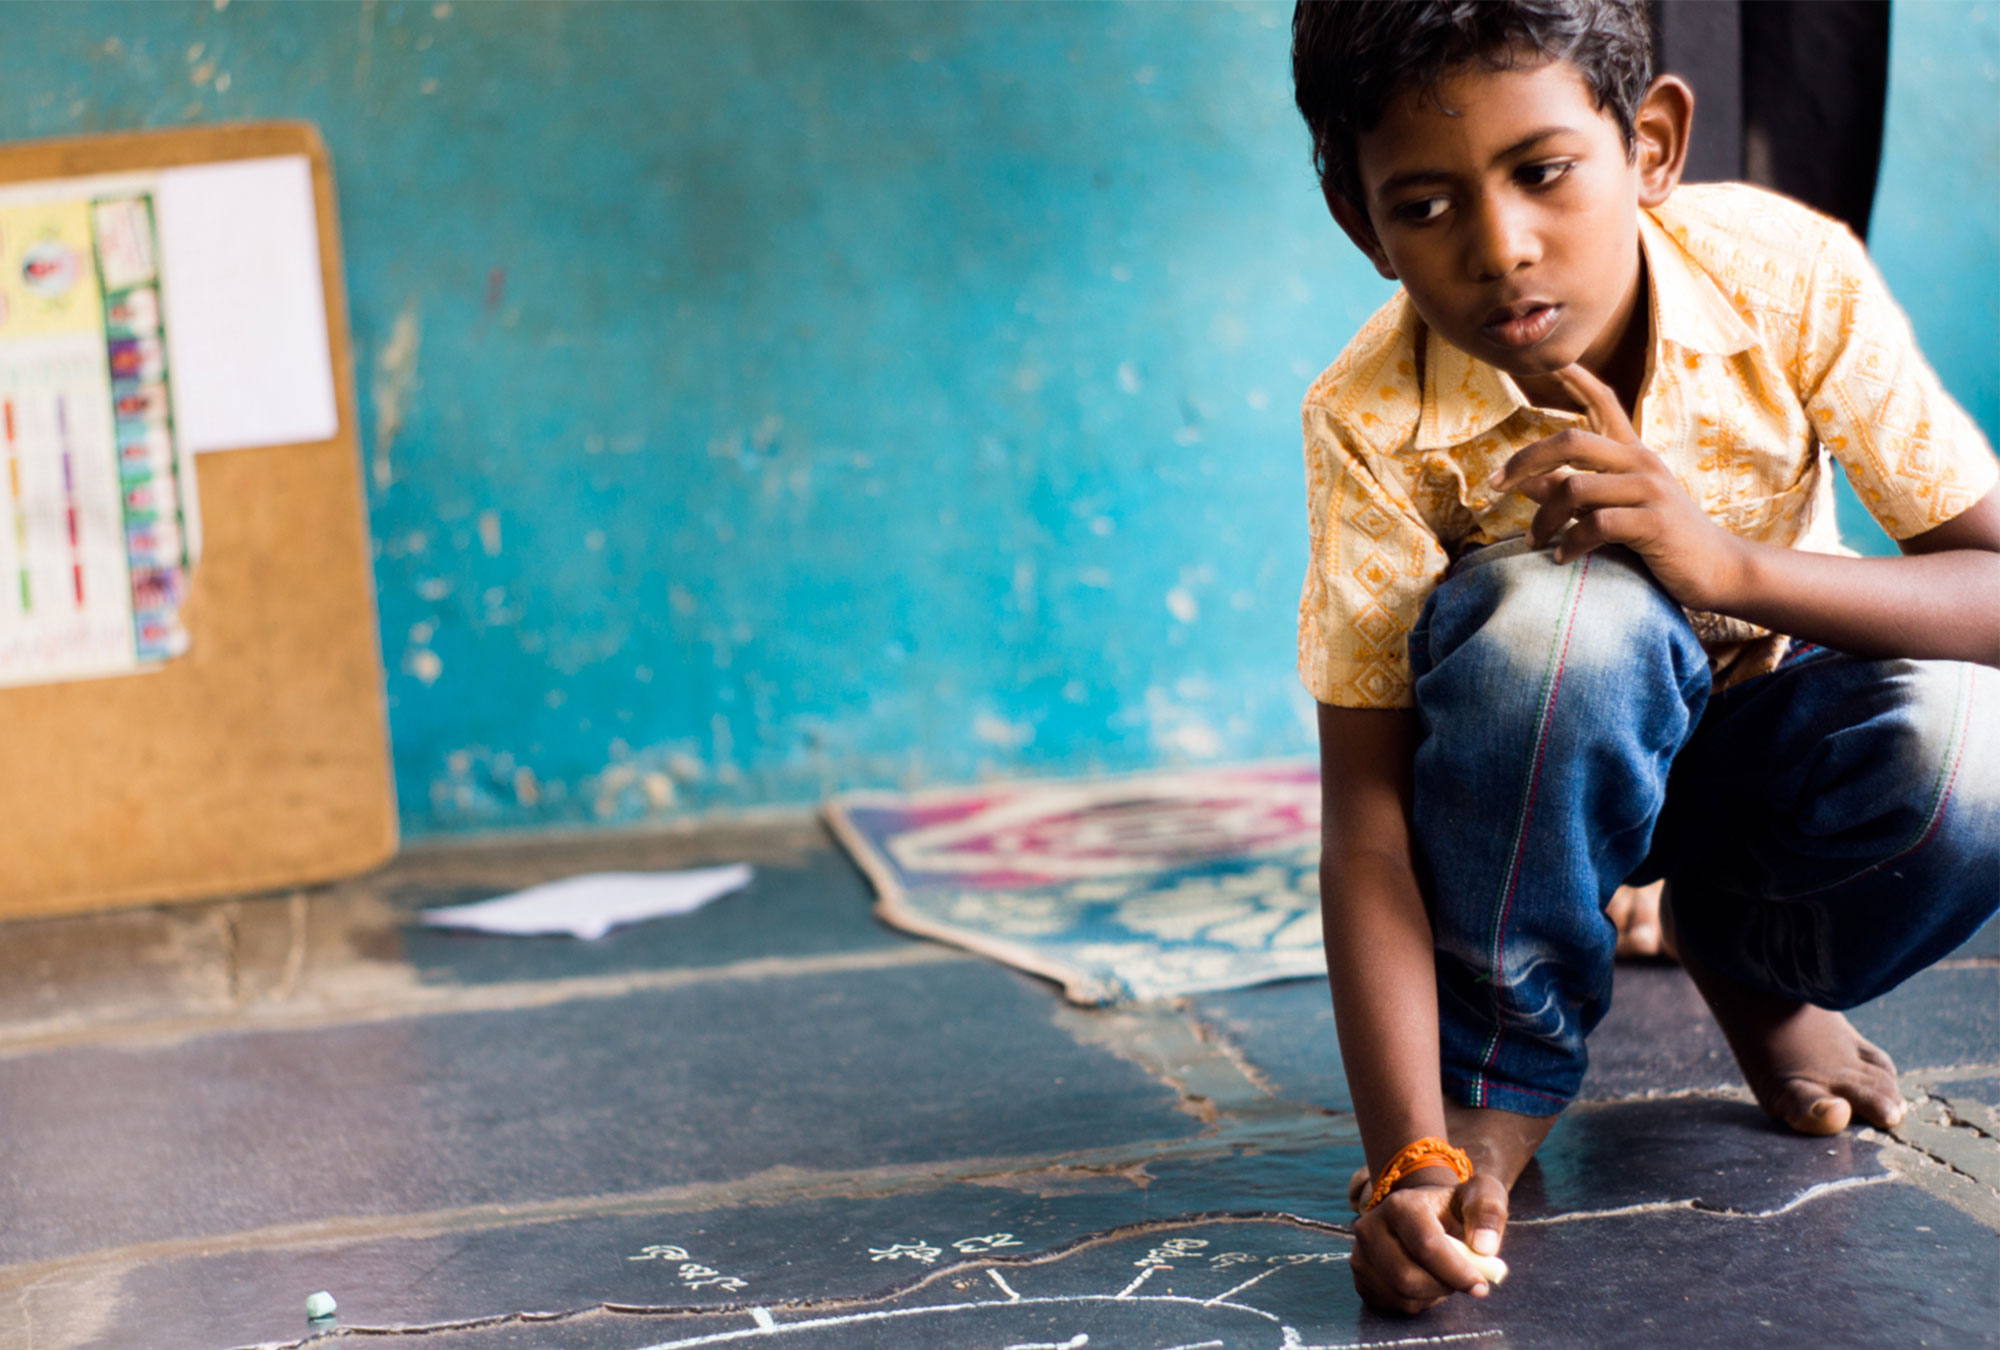 Young boy pauses in thought while writing on the floor in chalk